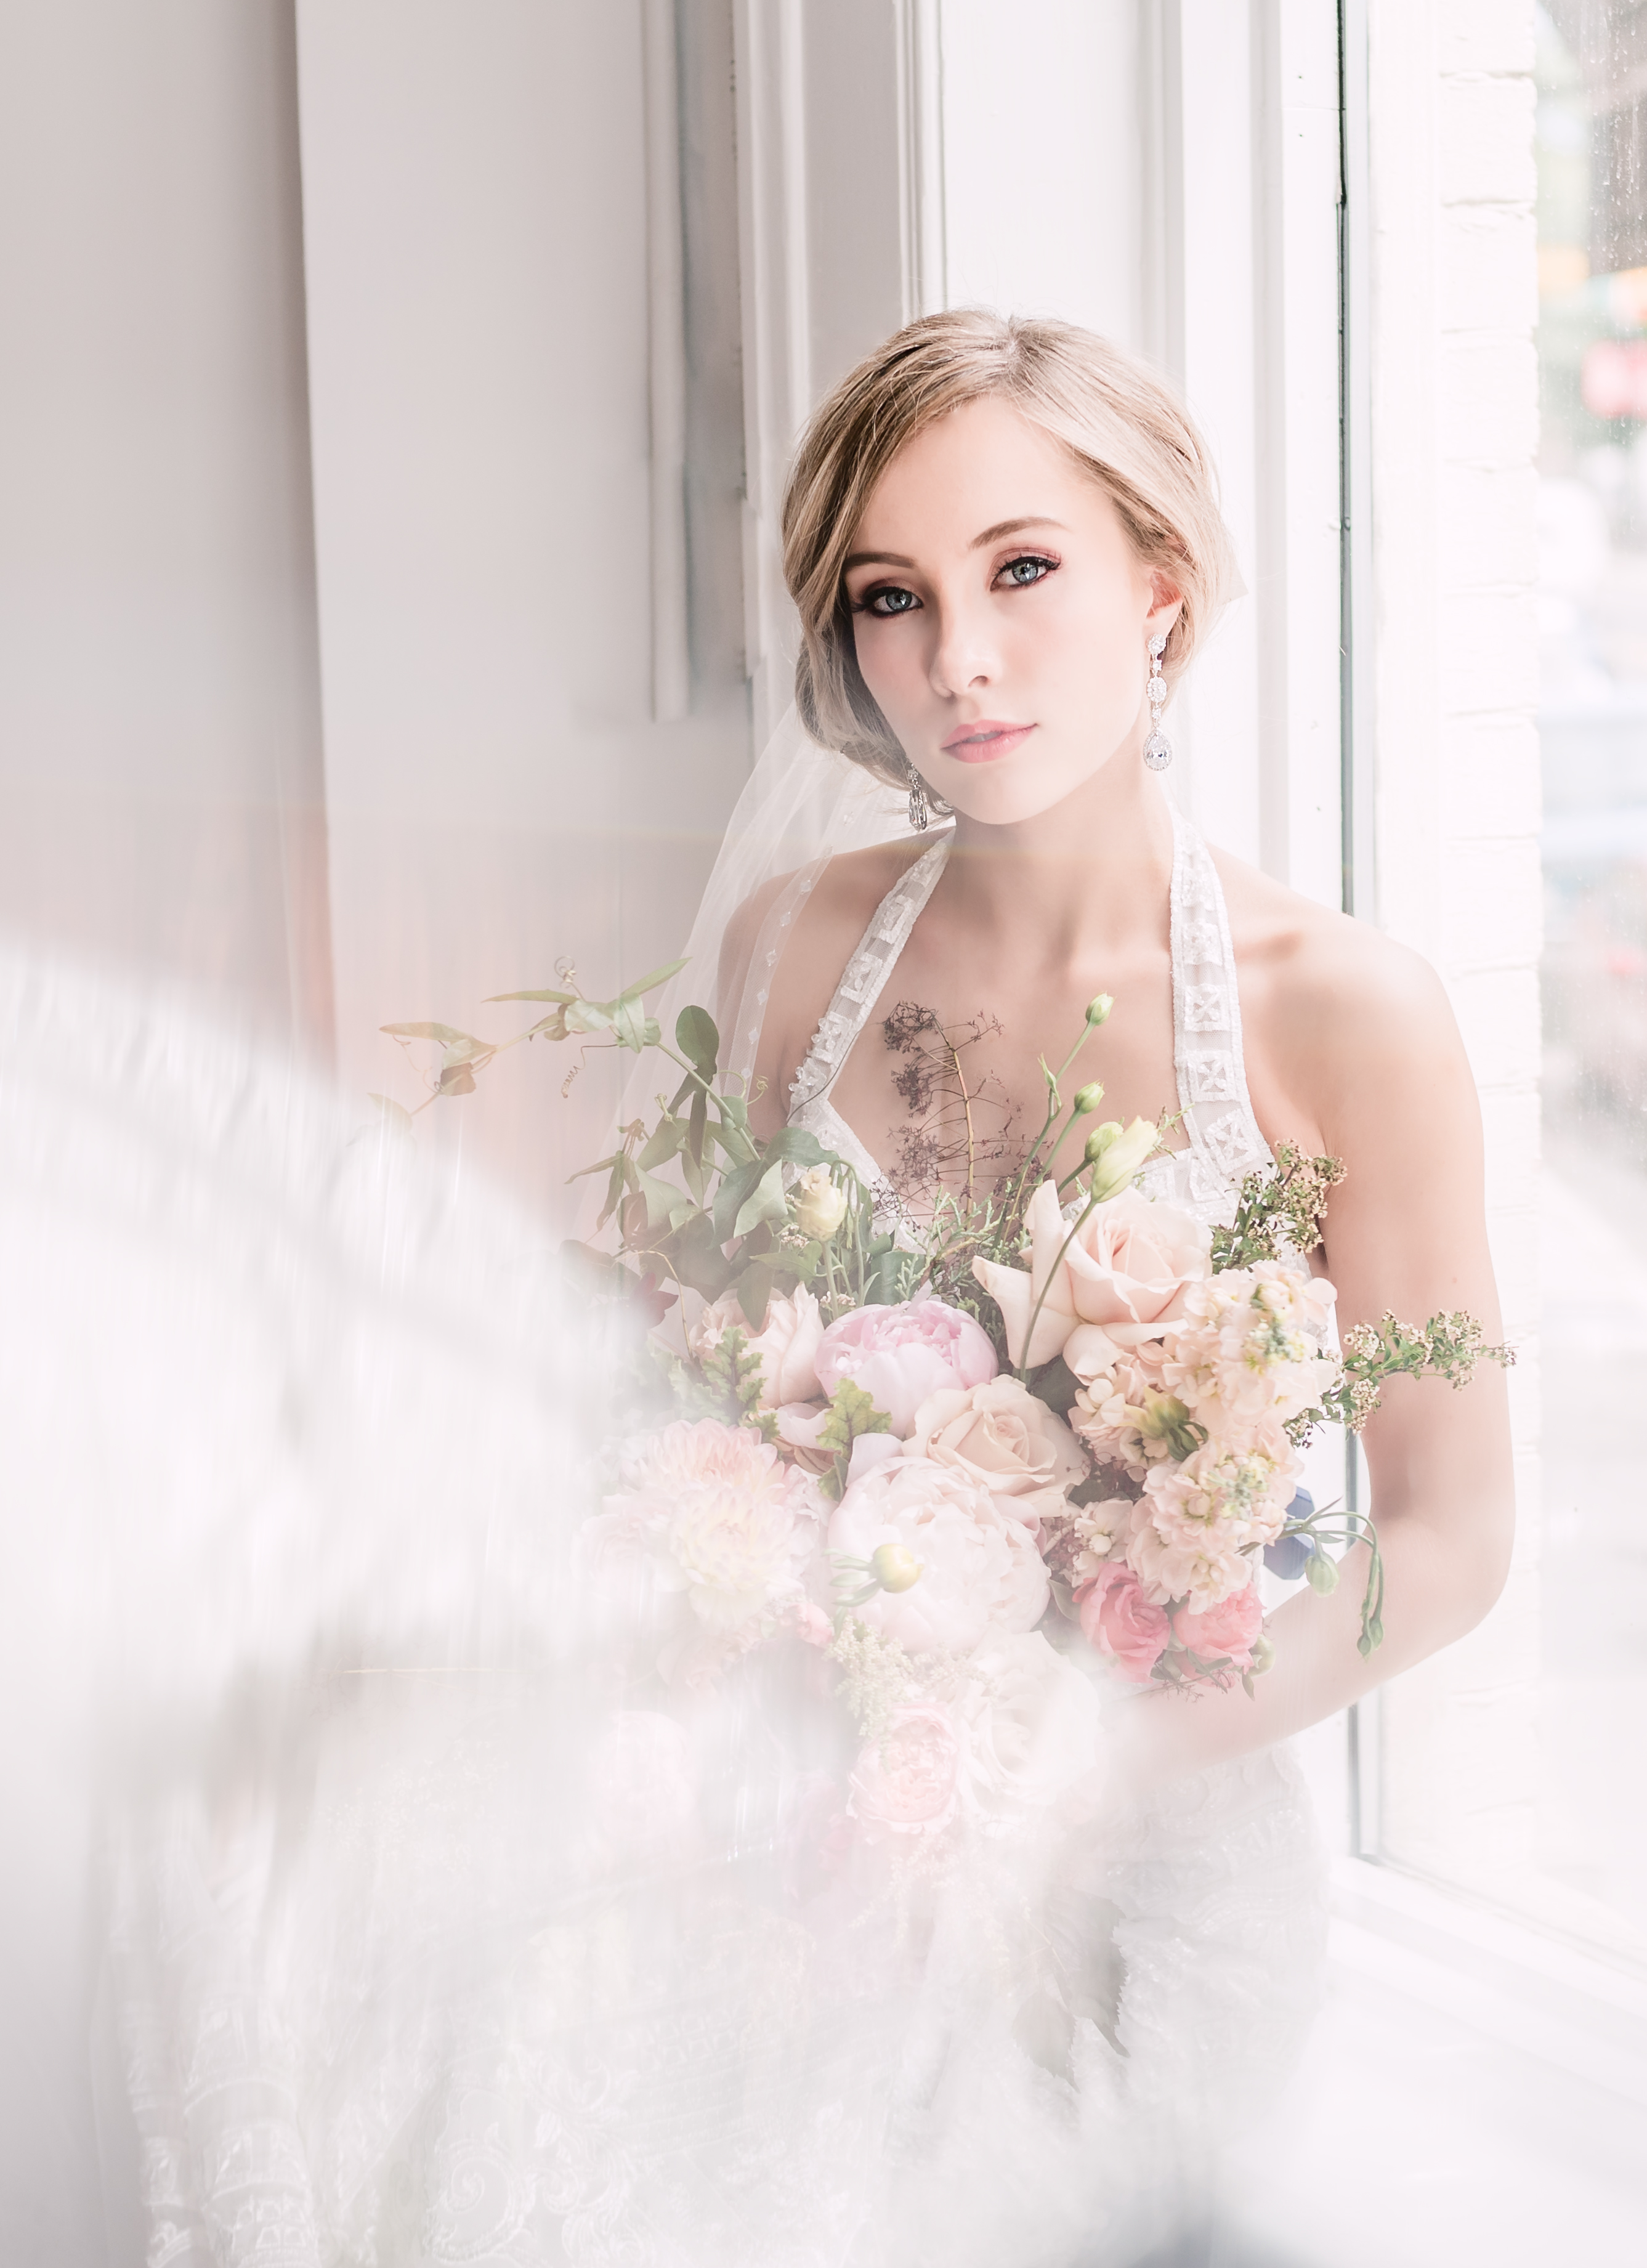 Soft and Romantic Wedding Flowers